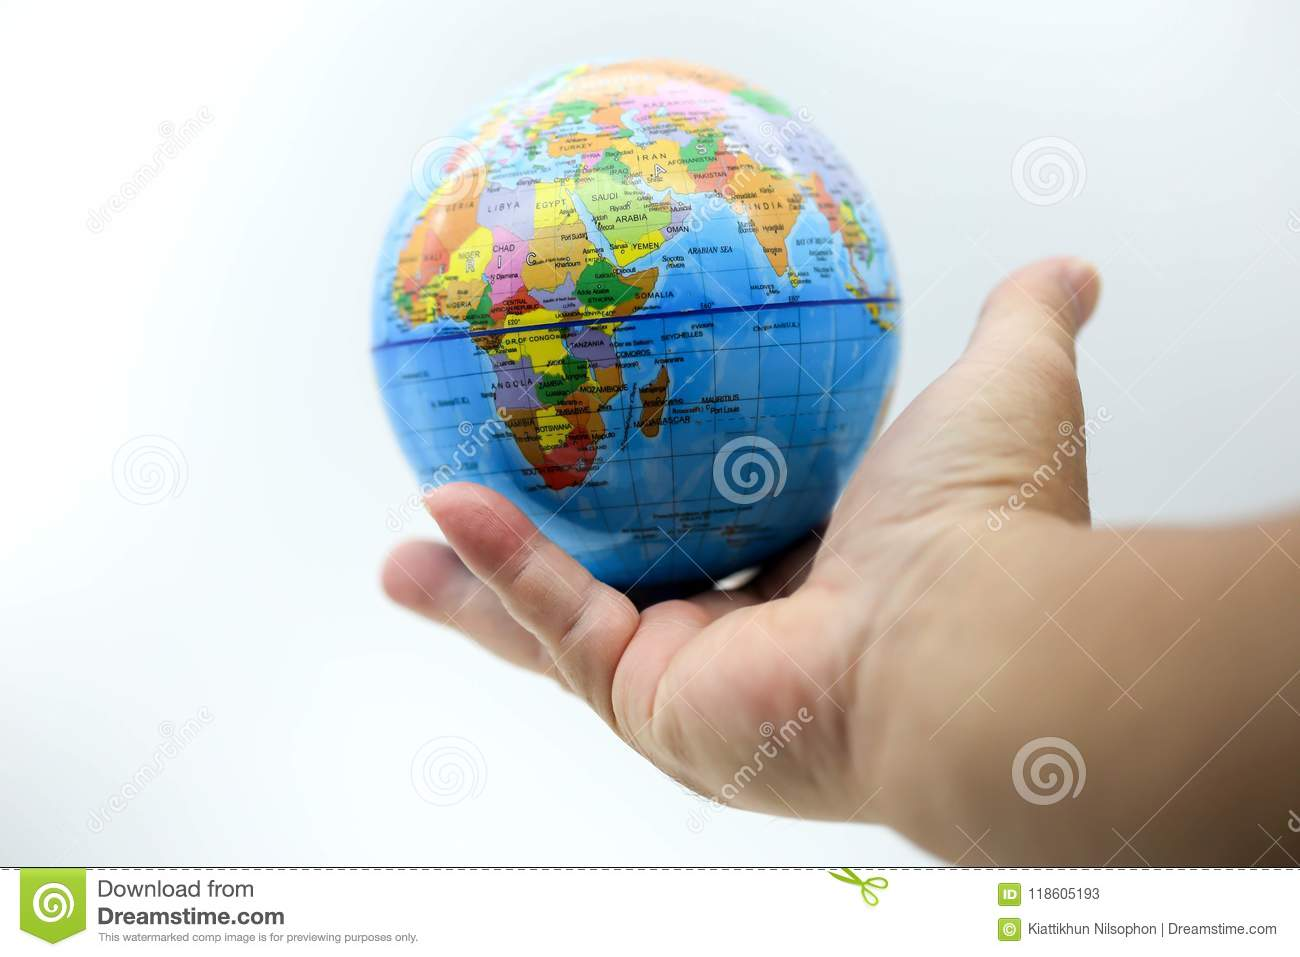 World Map On Hands.Holding Globe World Map On Hands Stock Image Image Of Environment